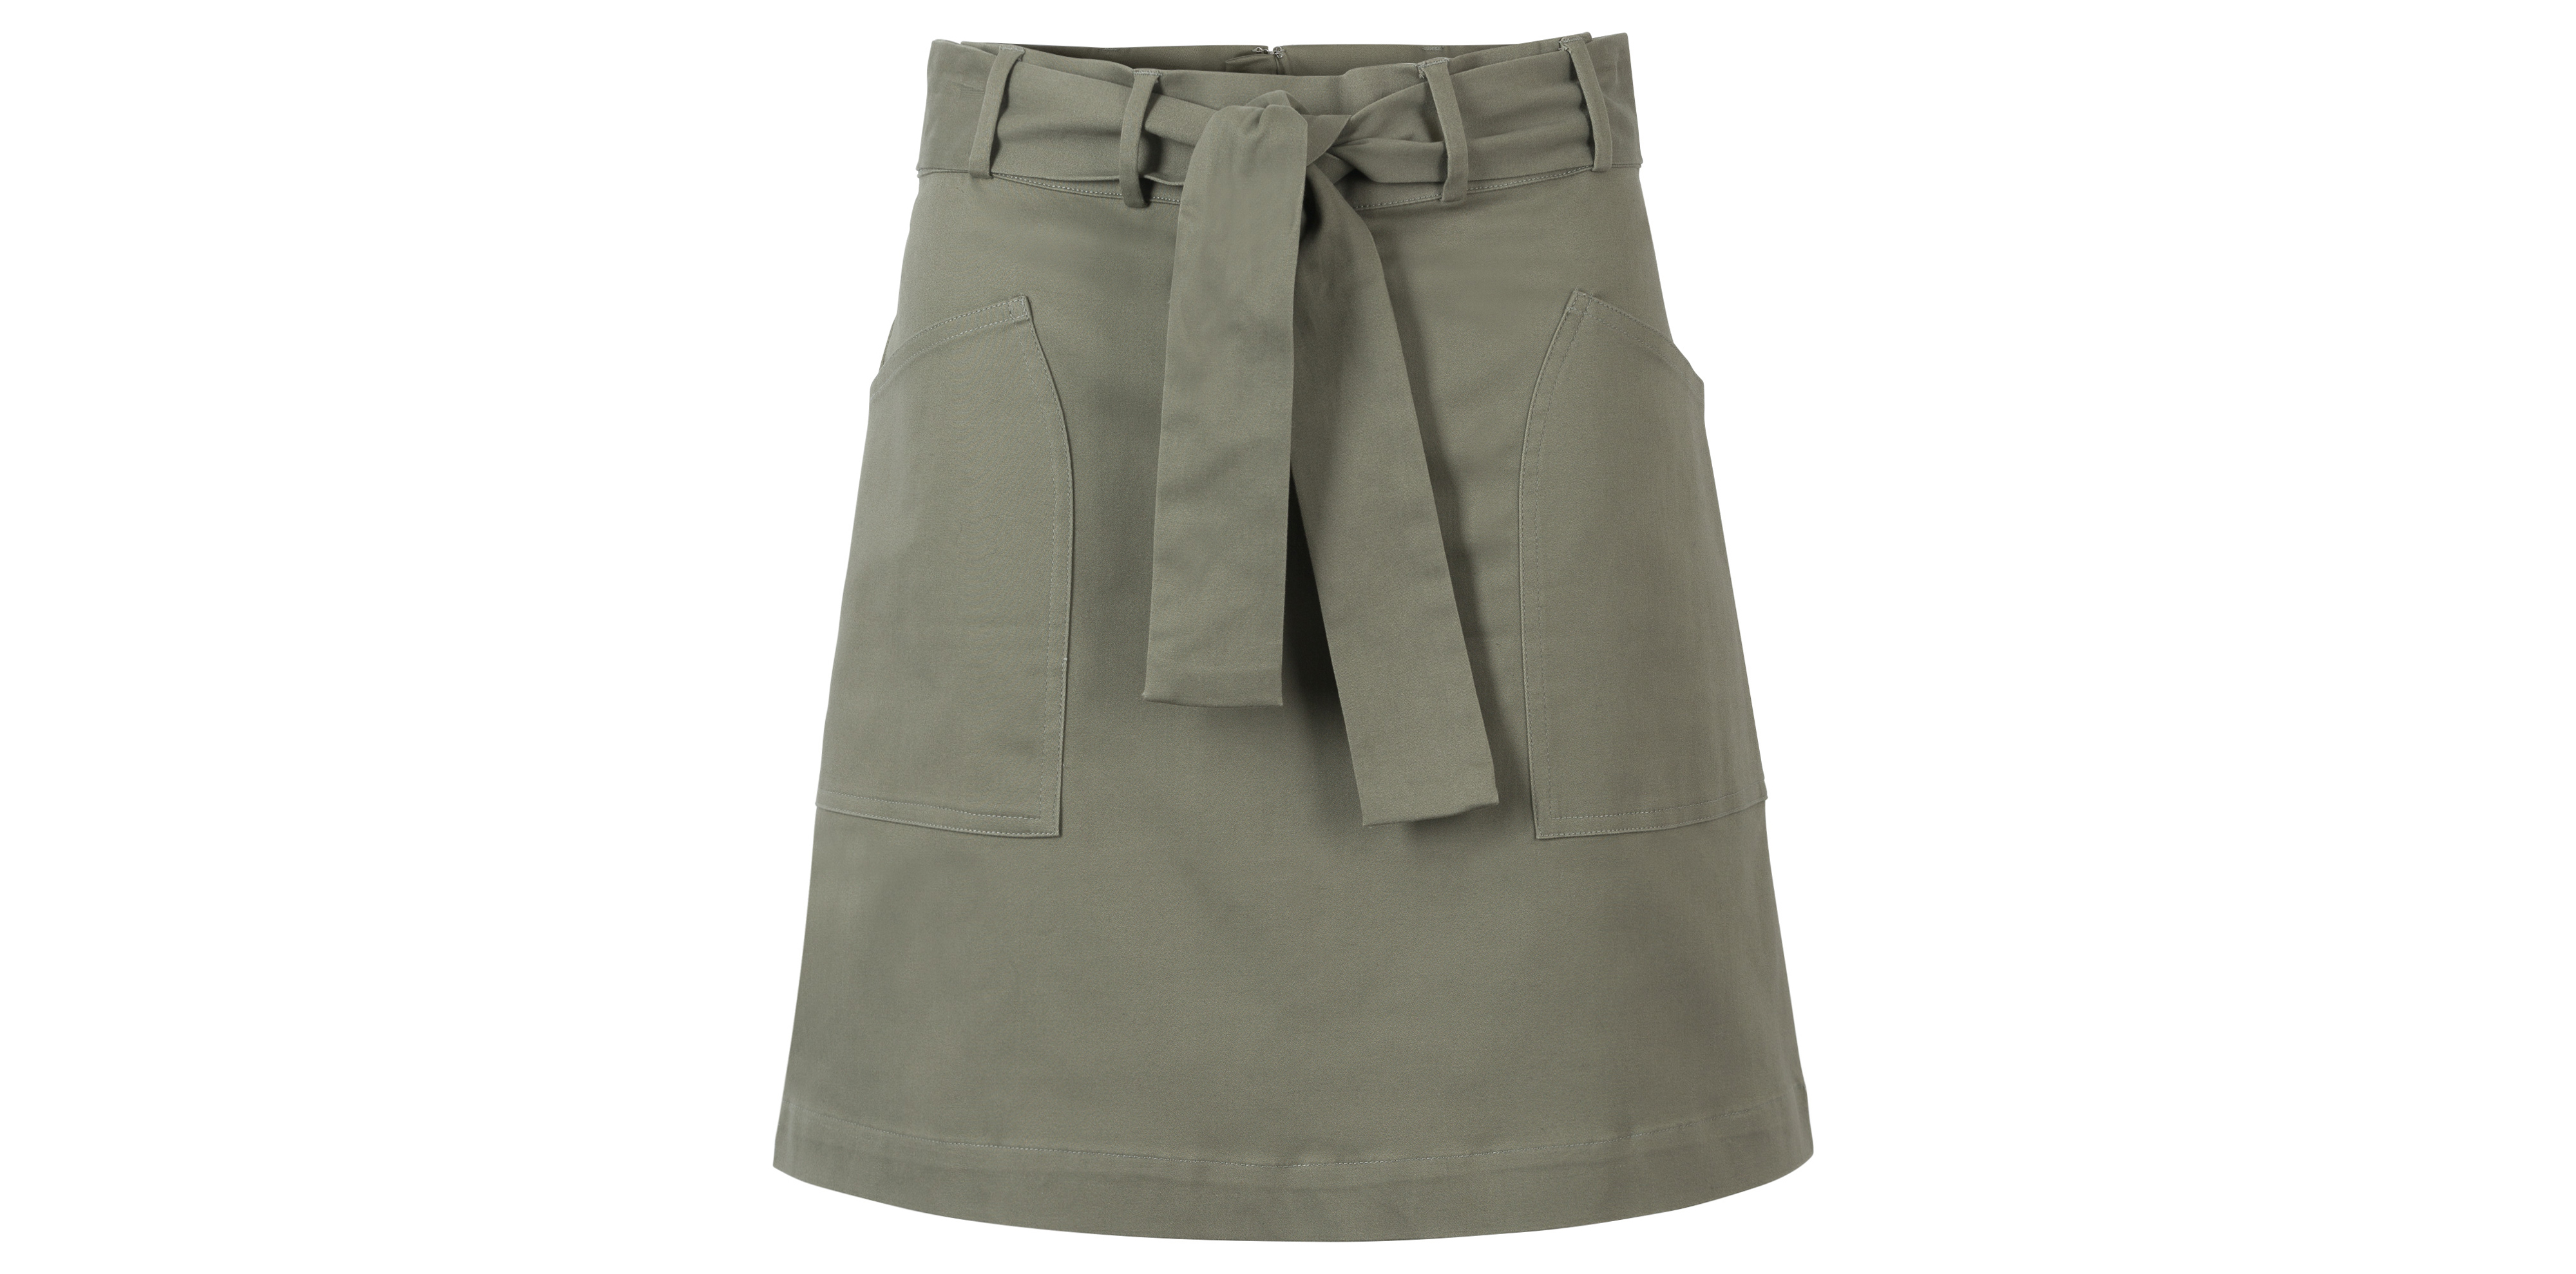 Oliver Bonas Divide Utility Khaki Cotton Mini Skirt